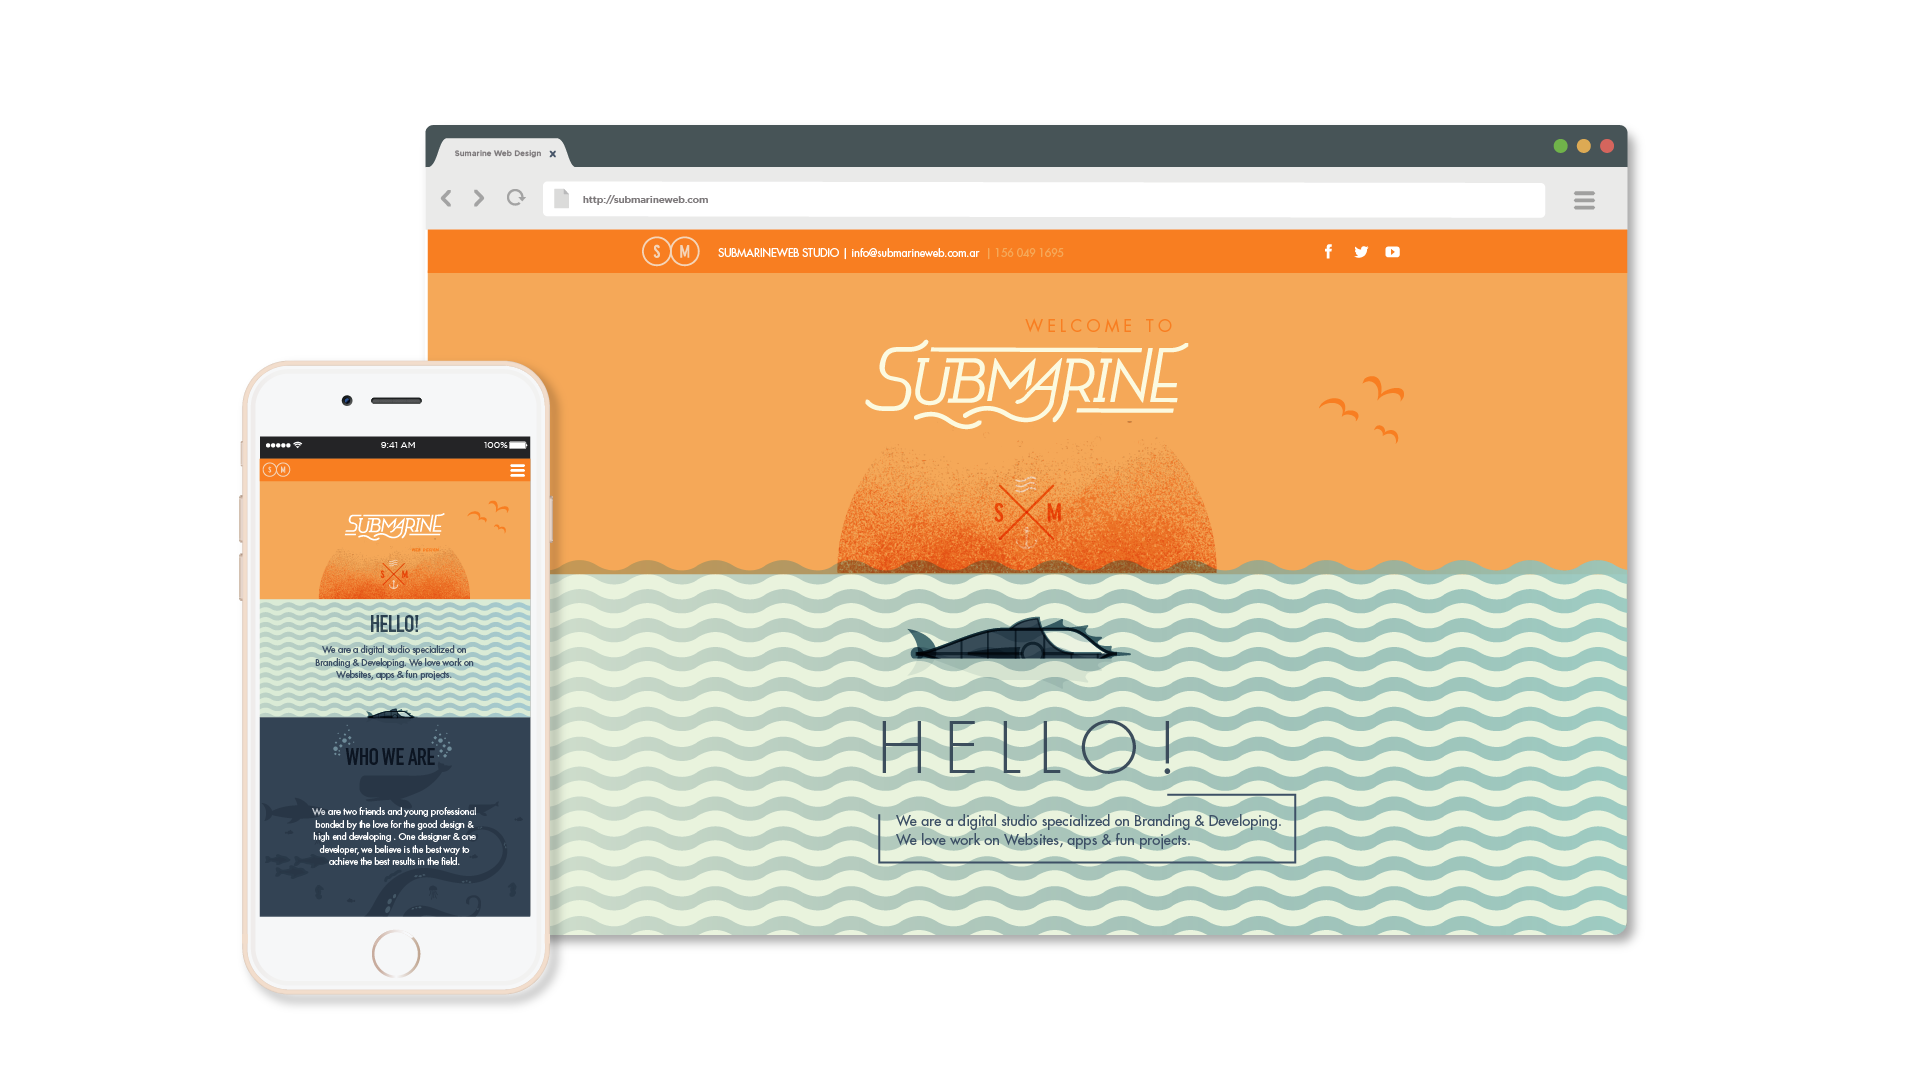 //SUBMARINE WEB// web.design